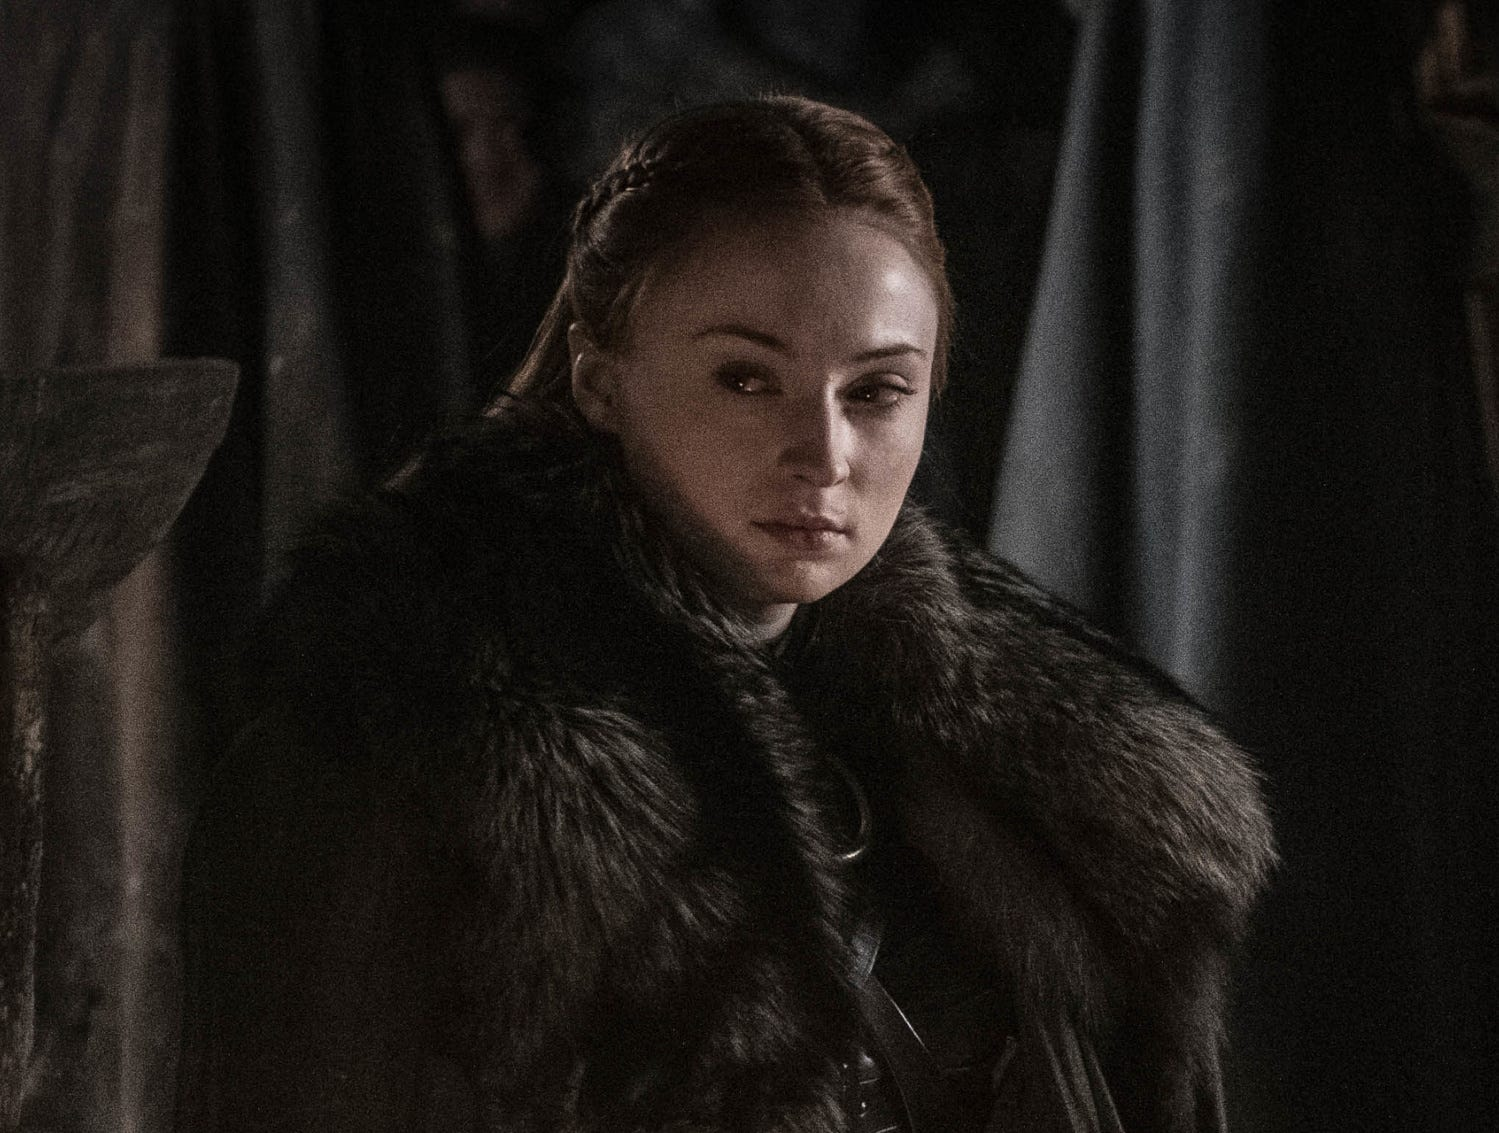 Sansa Stark looks authoritative but not particularly happy in this photo from the final seasons' third episode.